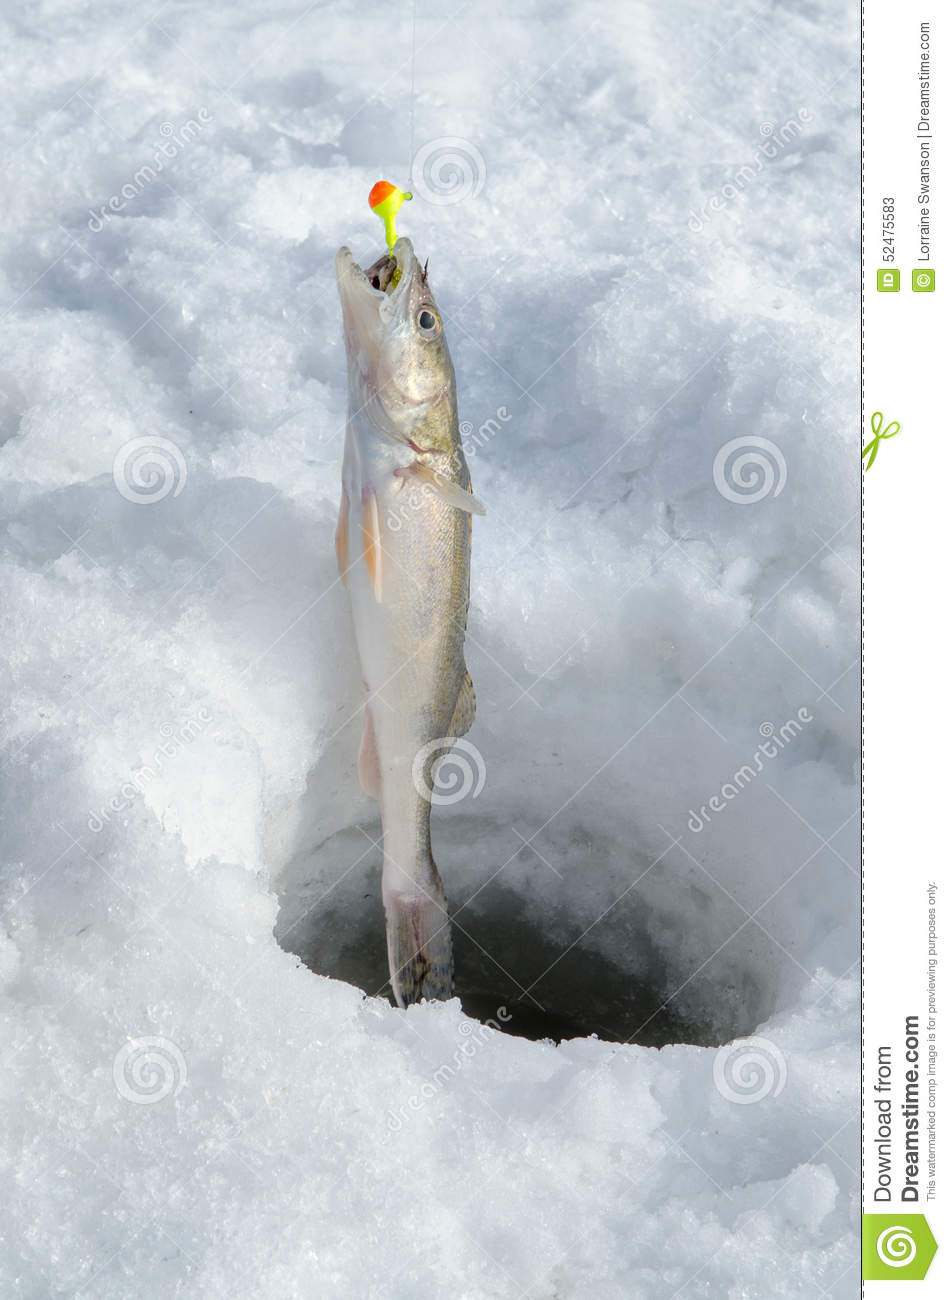 Fish caught in ice fishing hole on line stock image for How to ice fish